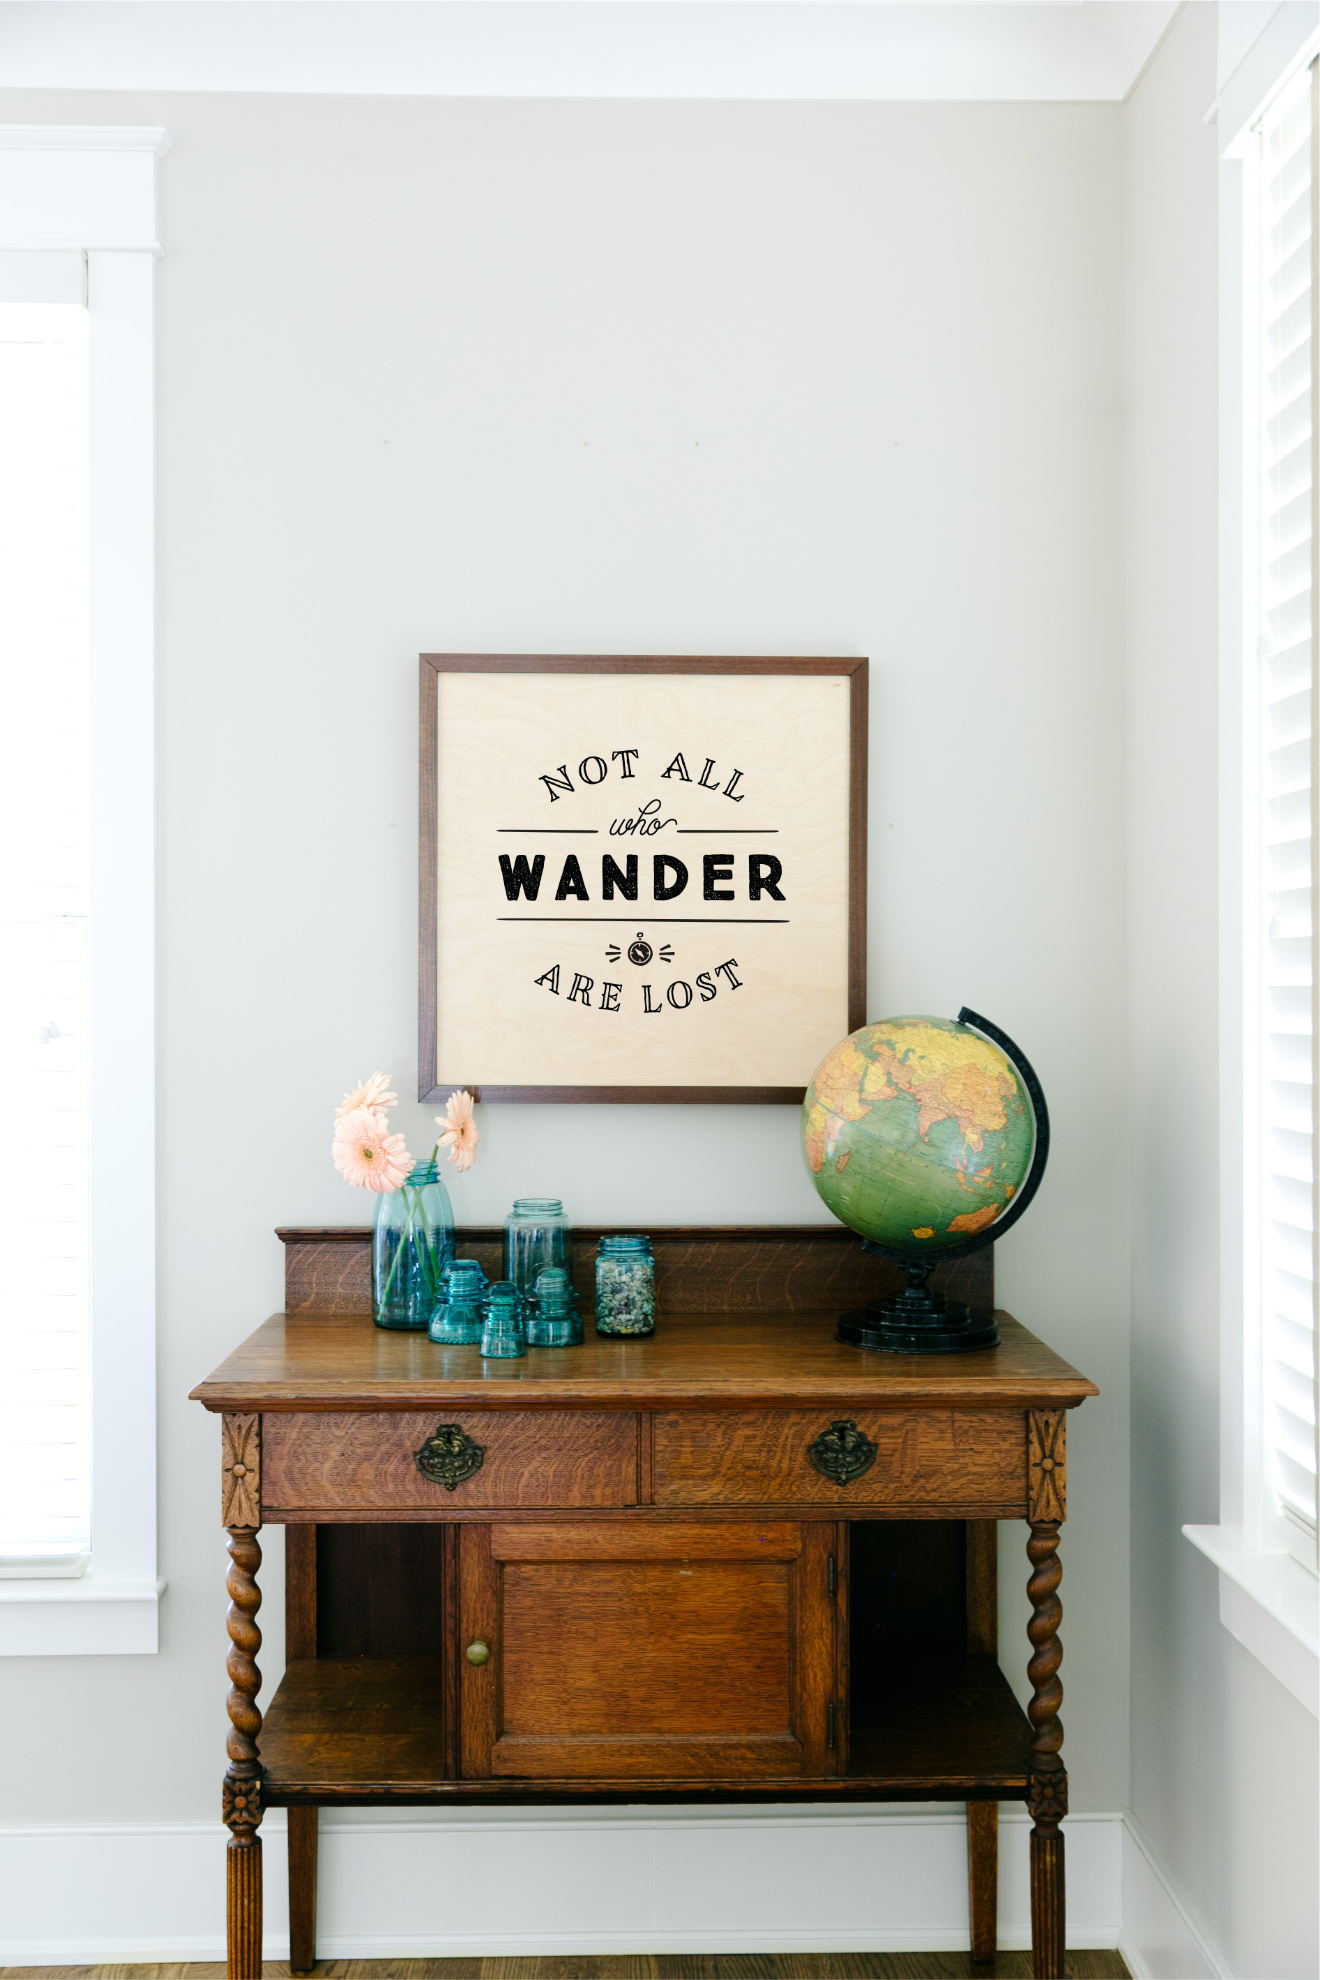 24×24 Framed Wood Sign Desk